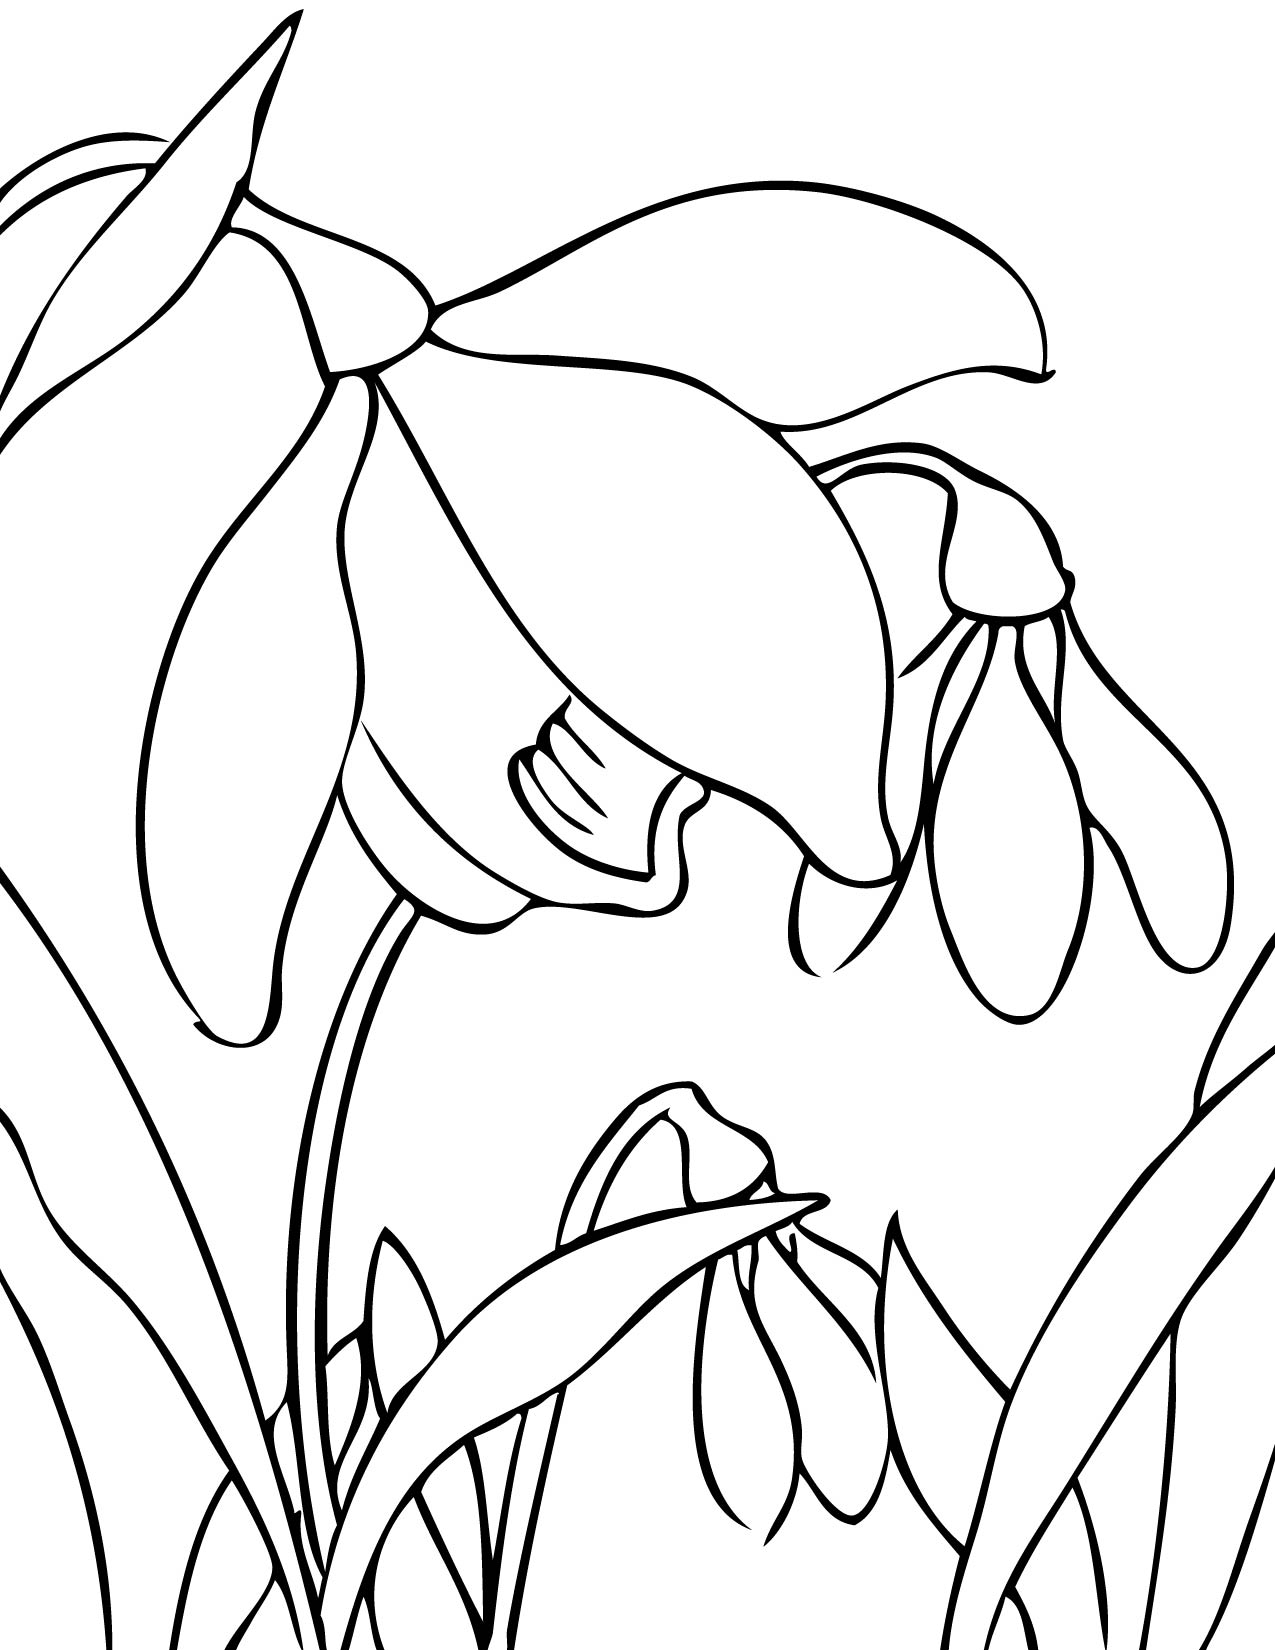 Free Drawings Of Spring Flowers Download Free Clip Art